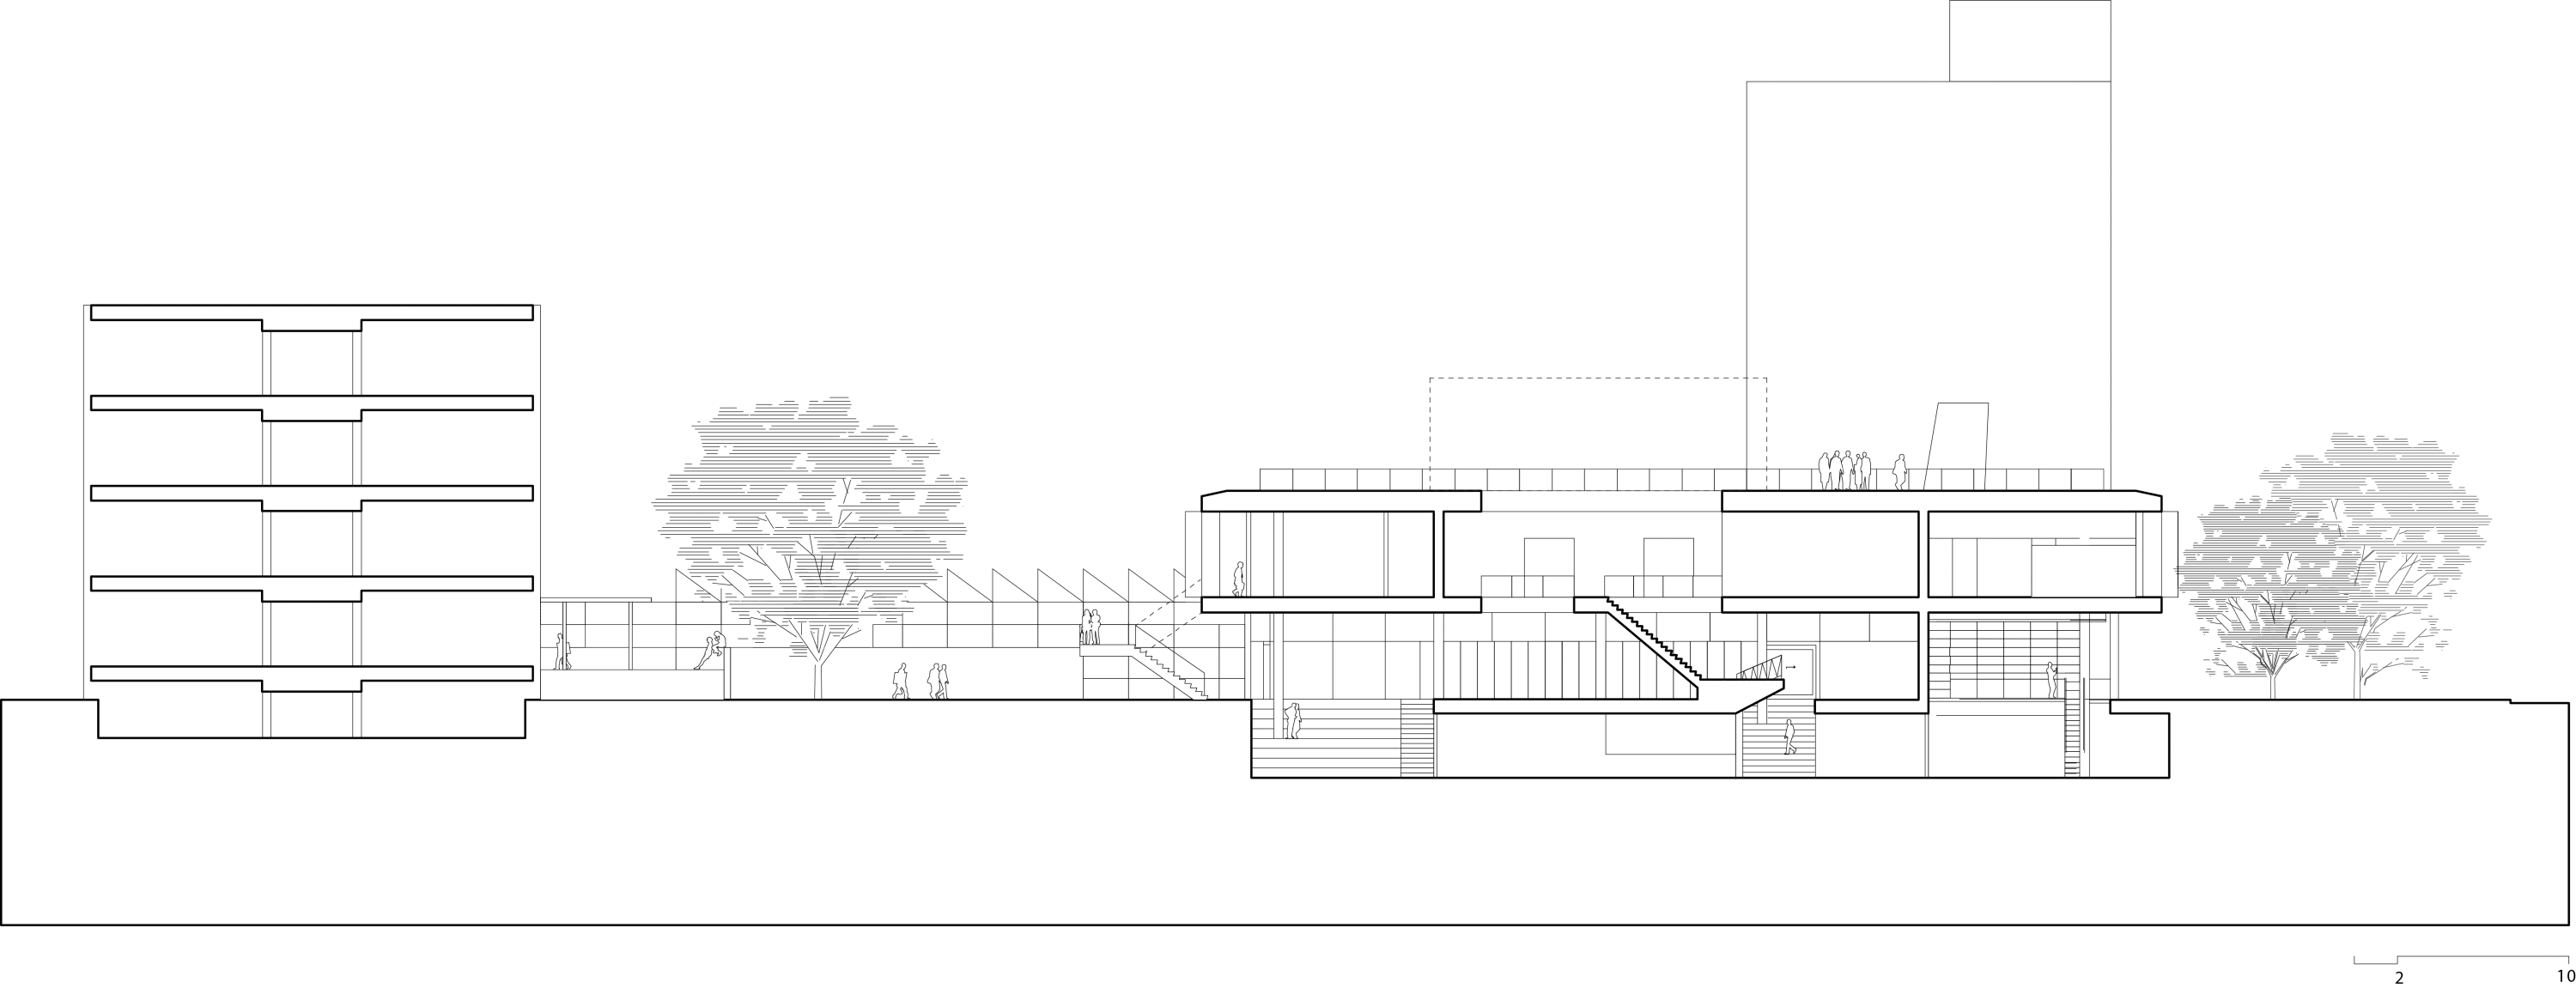 Studio Paulien Bremmer, Hootsmans architectuurbureau ... on glasner house, oppenheimer house, tepper house, shak house, rappaport house, dirk's house, stouder house, wong house, zeigler house, lane house, weeden house, schenck house, snedeker house, zeller house, van eck house, emmaus house, schubert house, swenson house, rodriguez house, sizemore house,